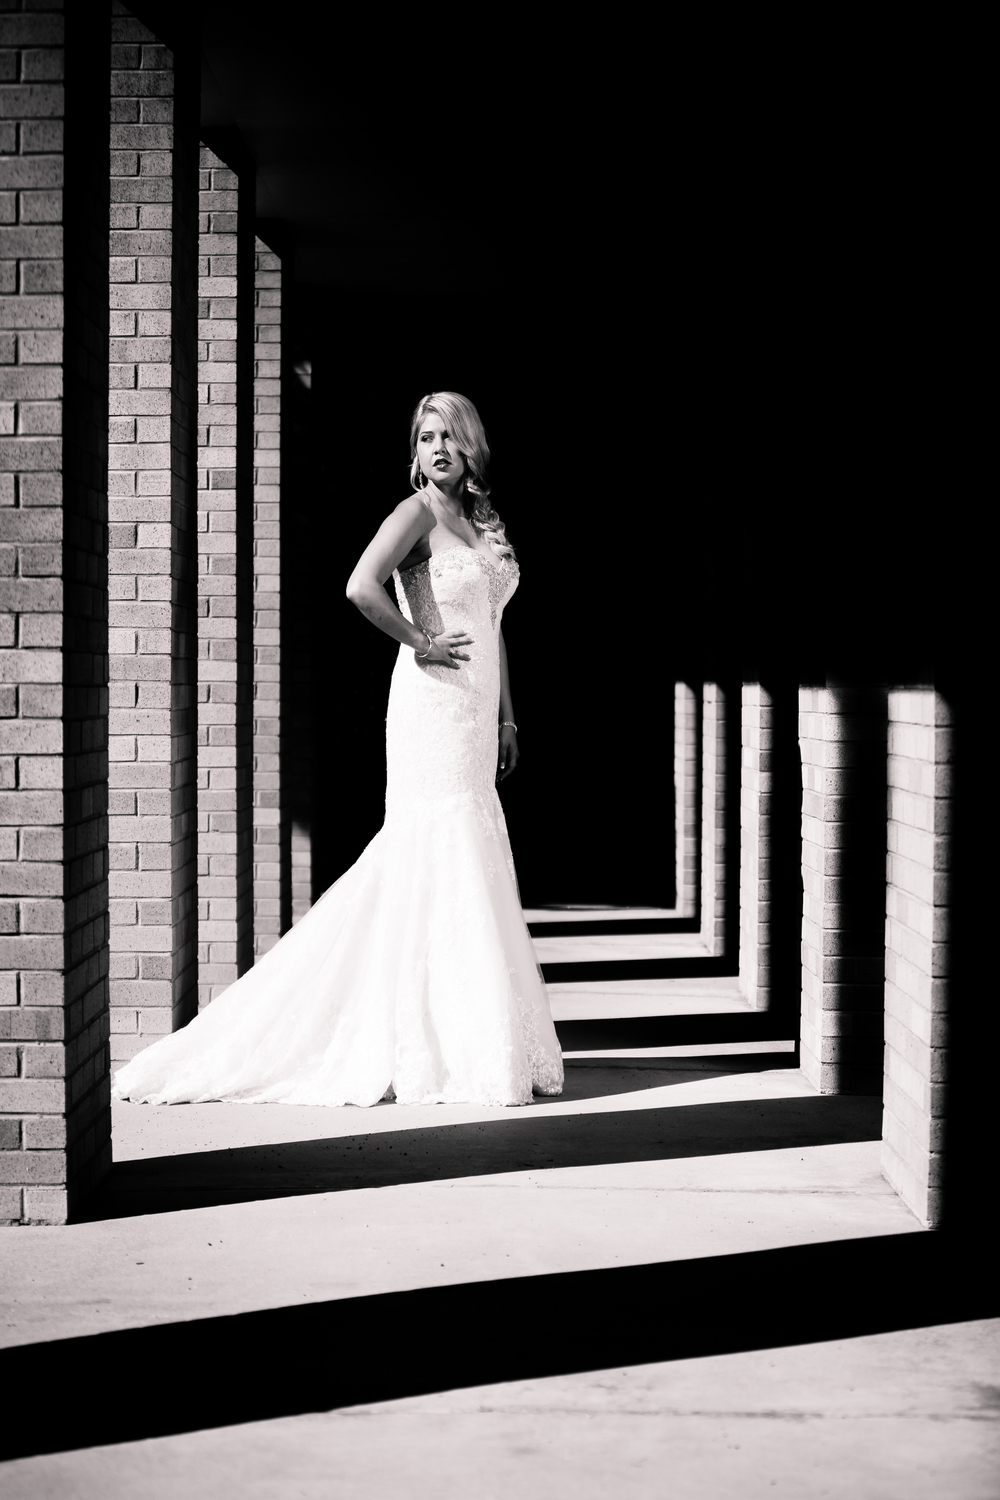 Black and white bridal. www.jmgantphotography.com